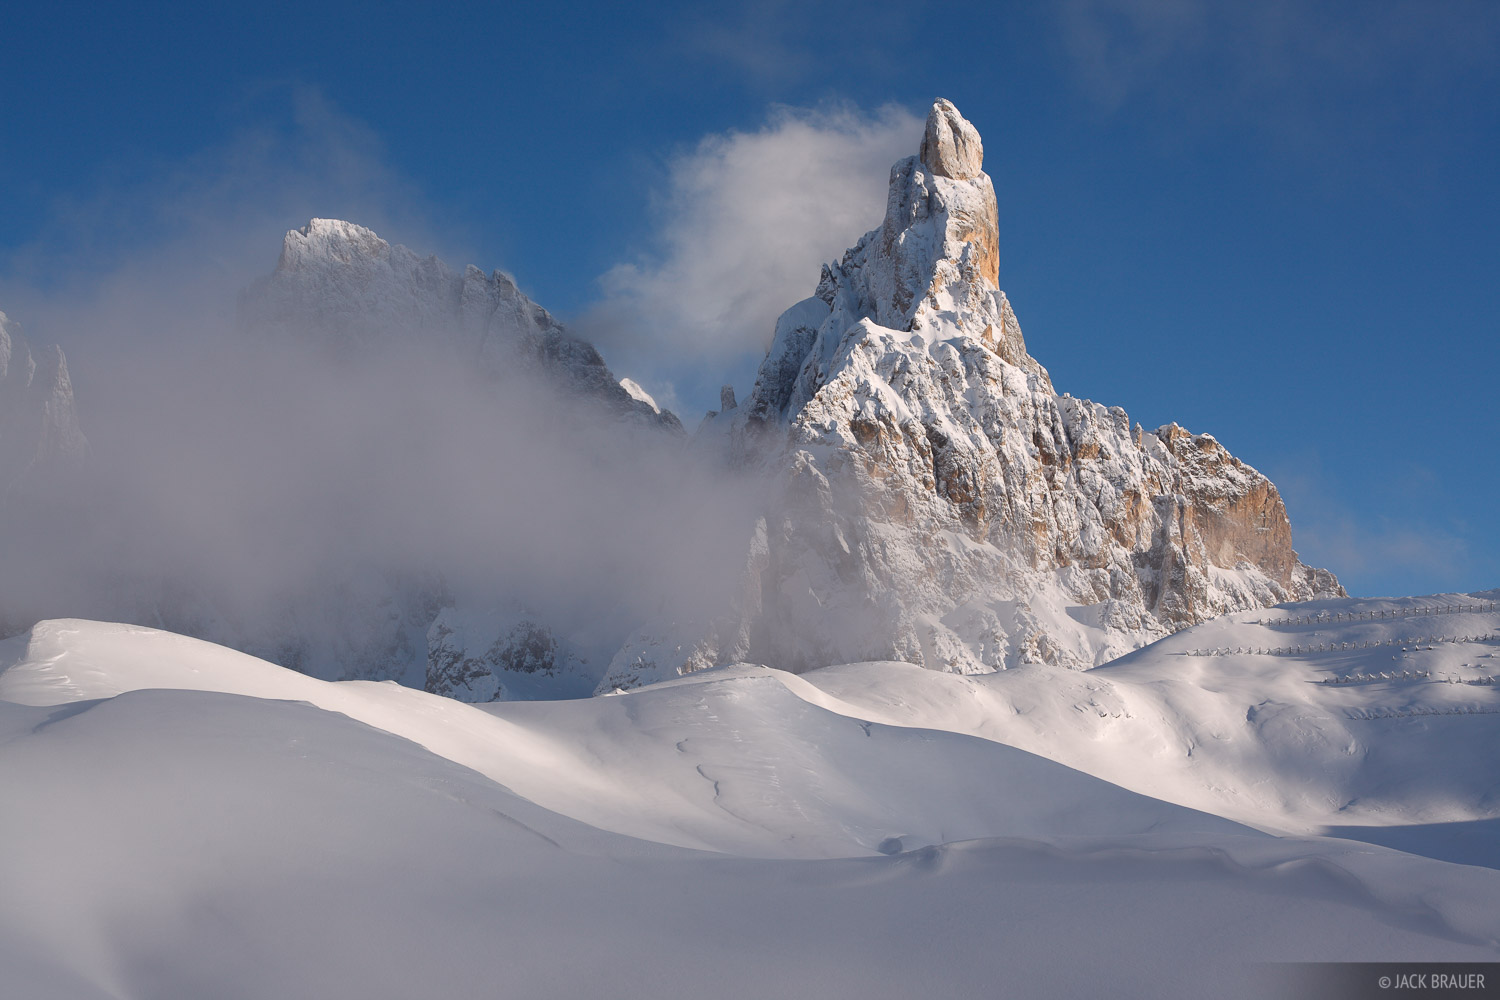 Cimon della Pala, snowy, Dolomites, Italy, December, photo